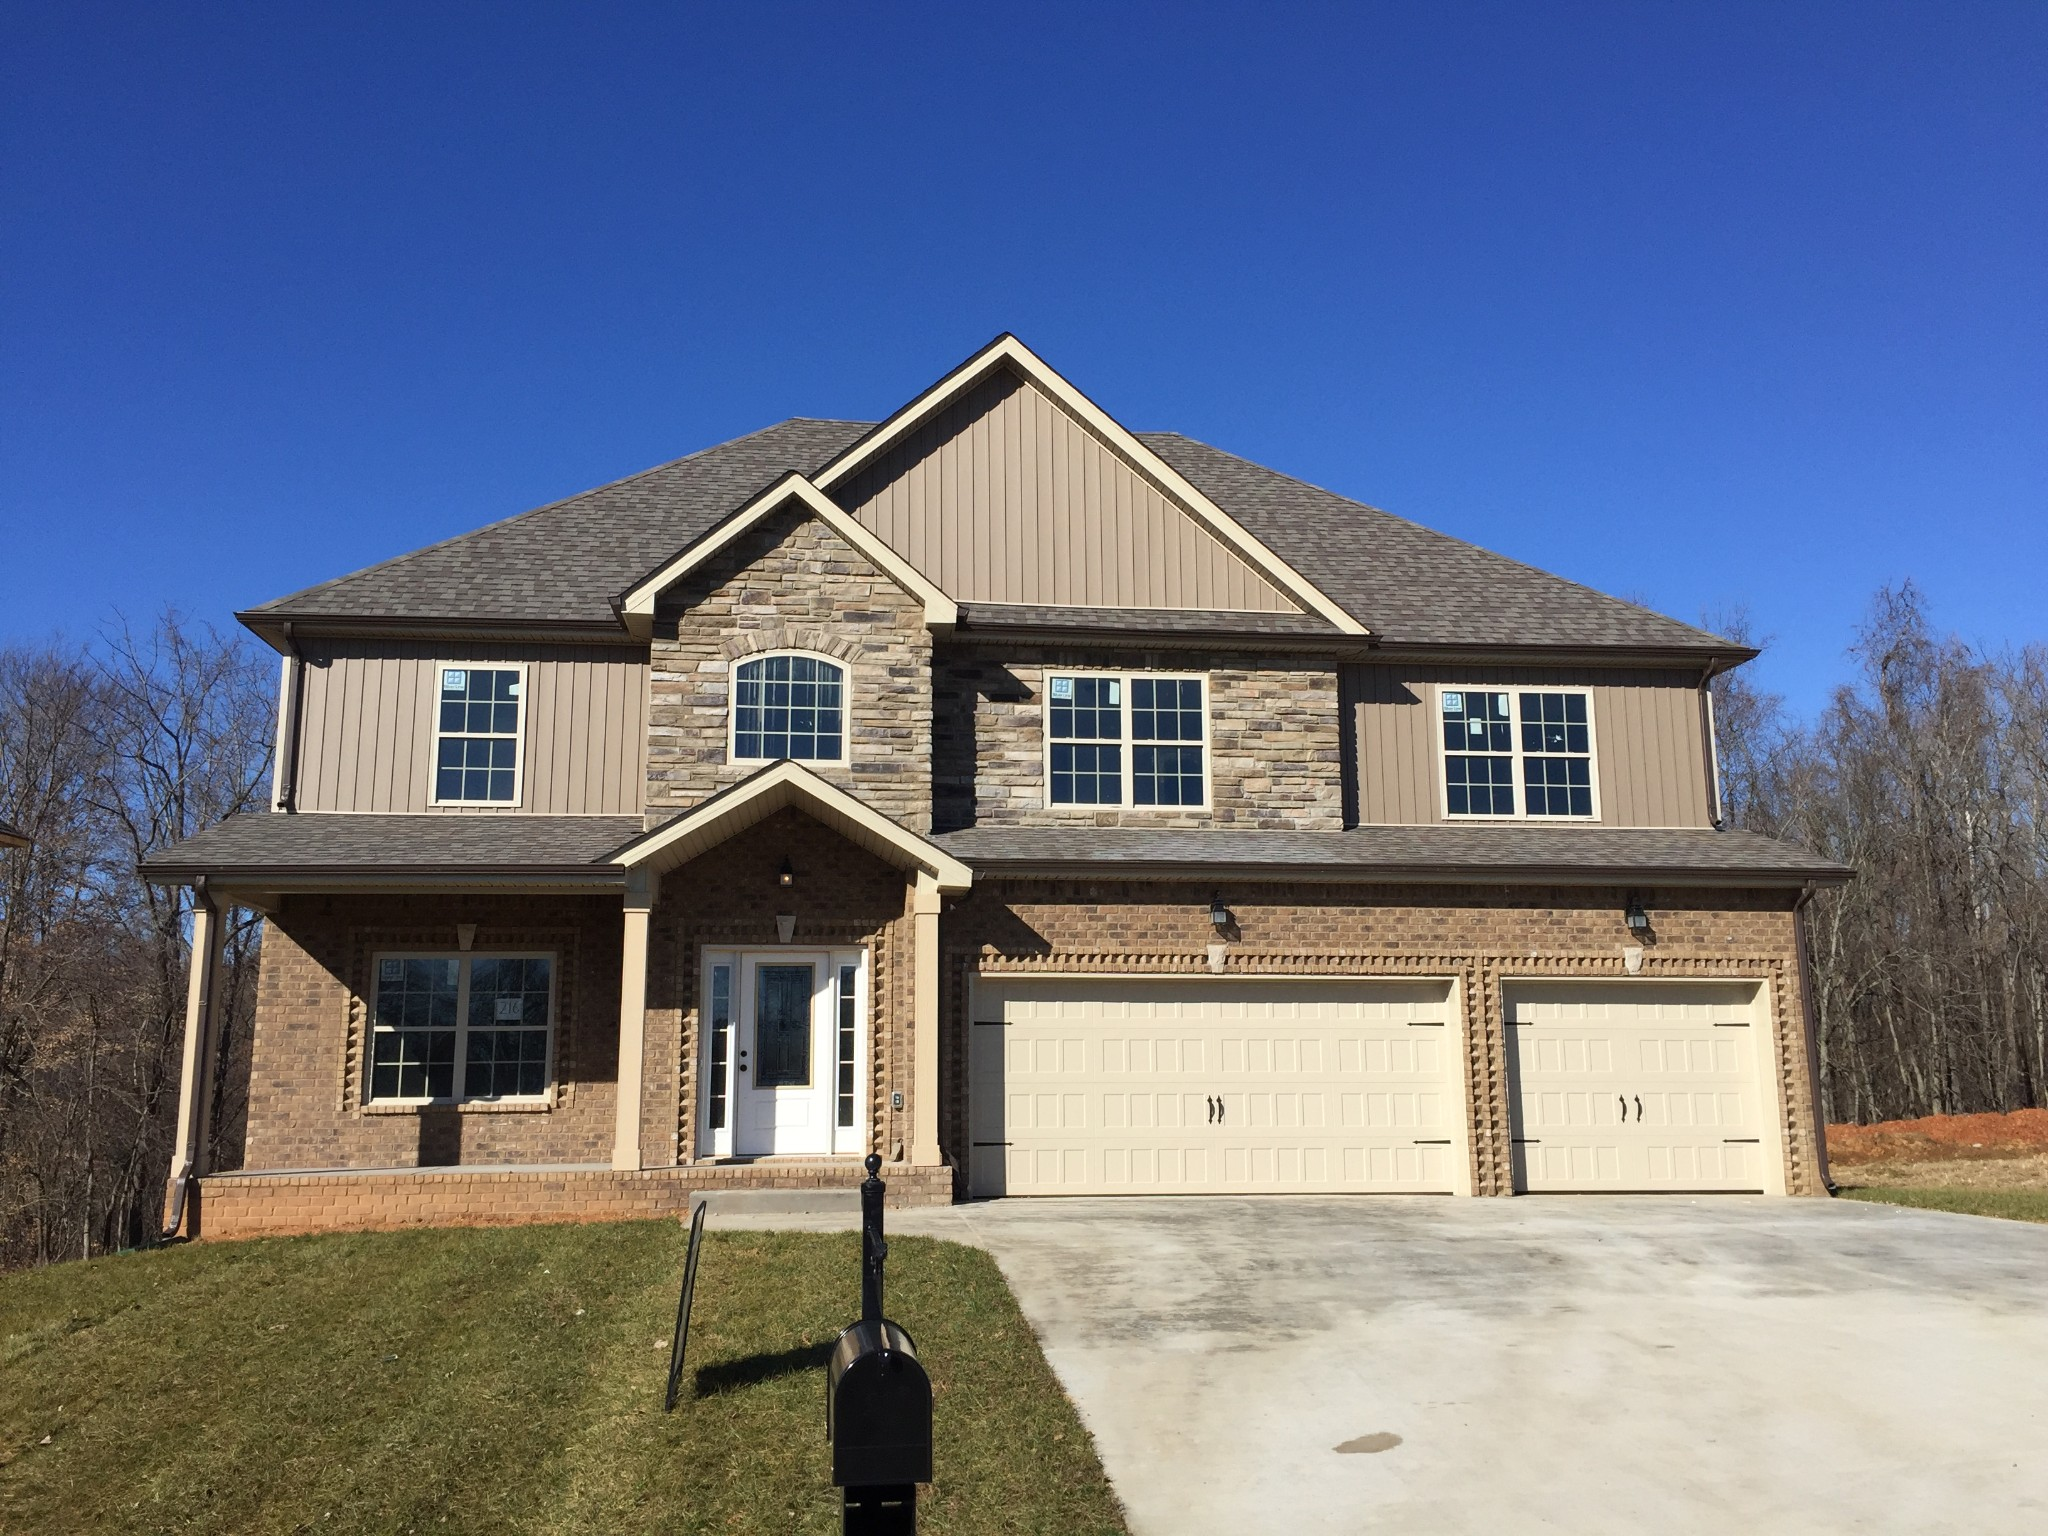 216 Timber Springs, Clarksville, TN 37042 - Clarksville, TN real estate listing